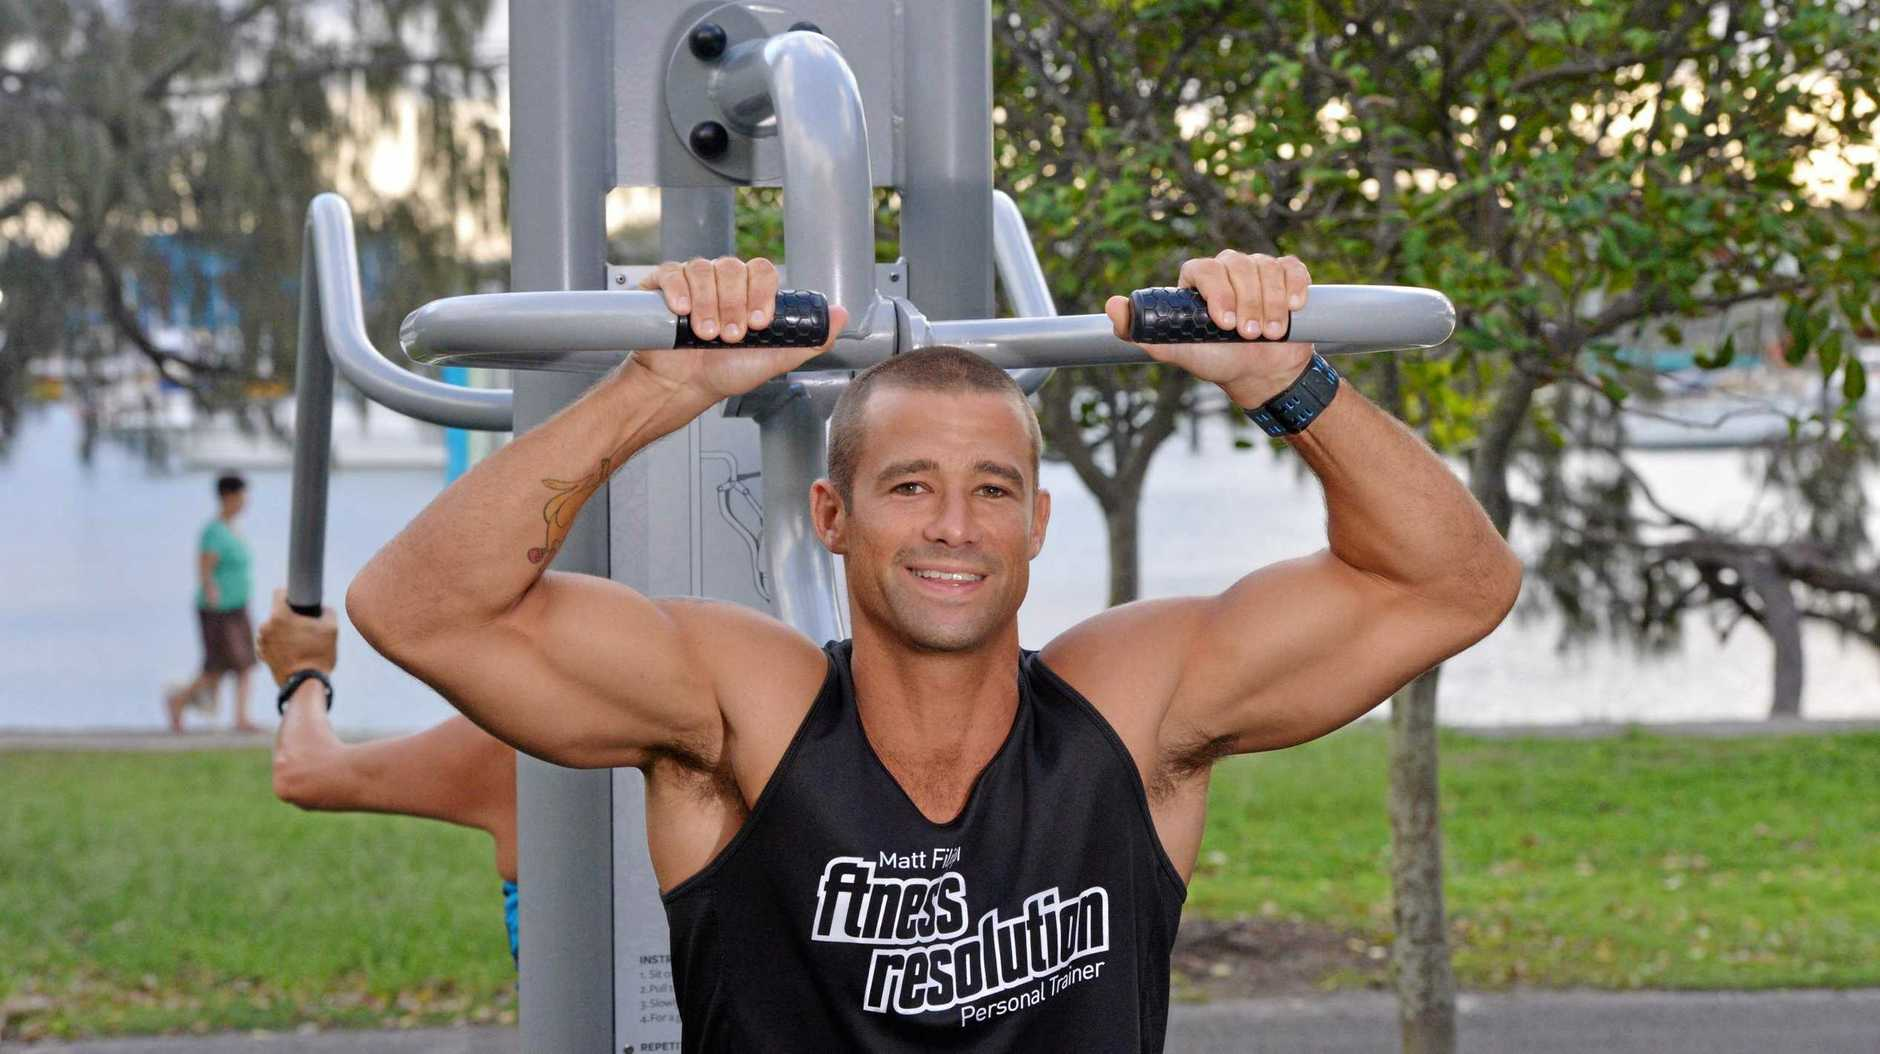 BEST PT: Matt Filippi has wowed crowds on Australian Ninja Warrior, and he's in the running to be named the best personal trainer on the Sunshine Coast.